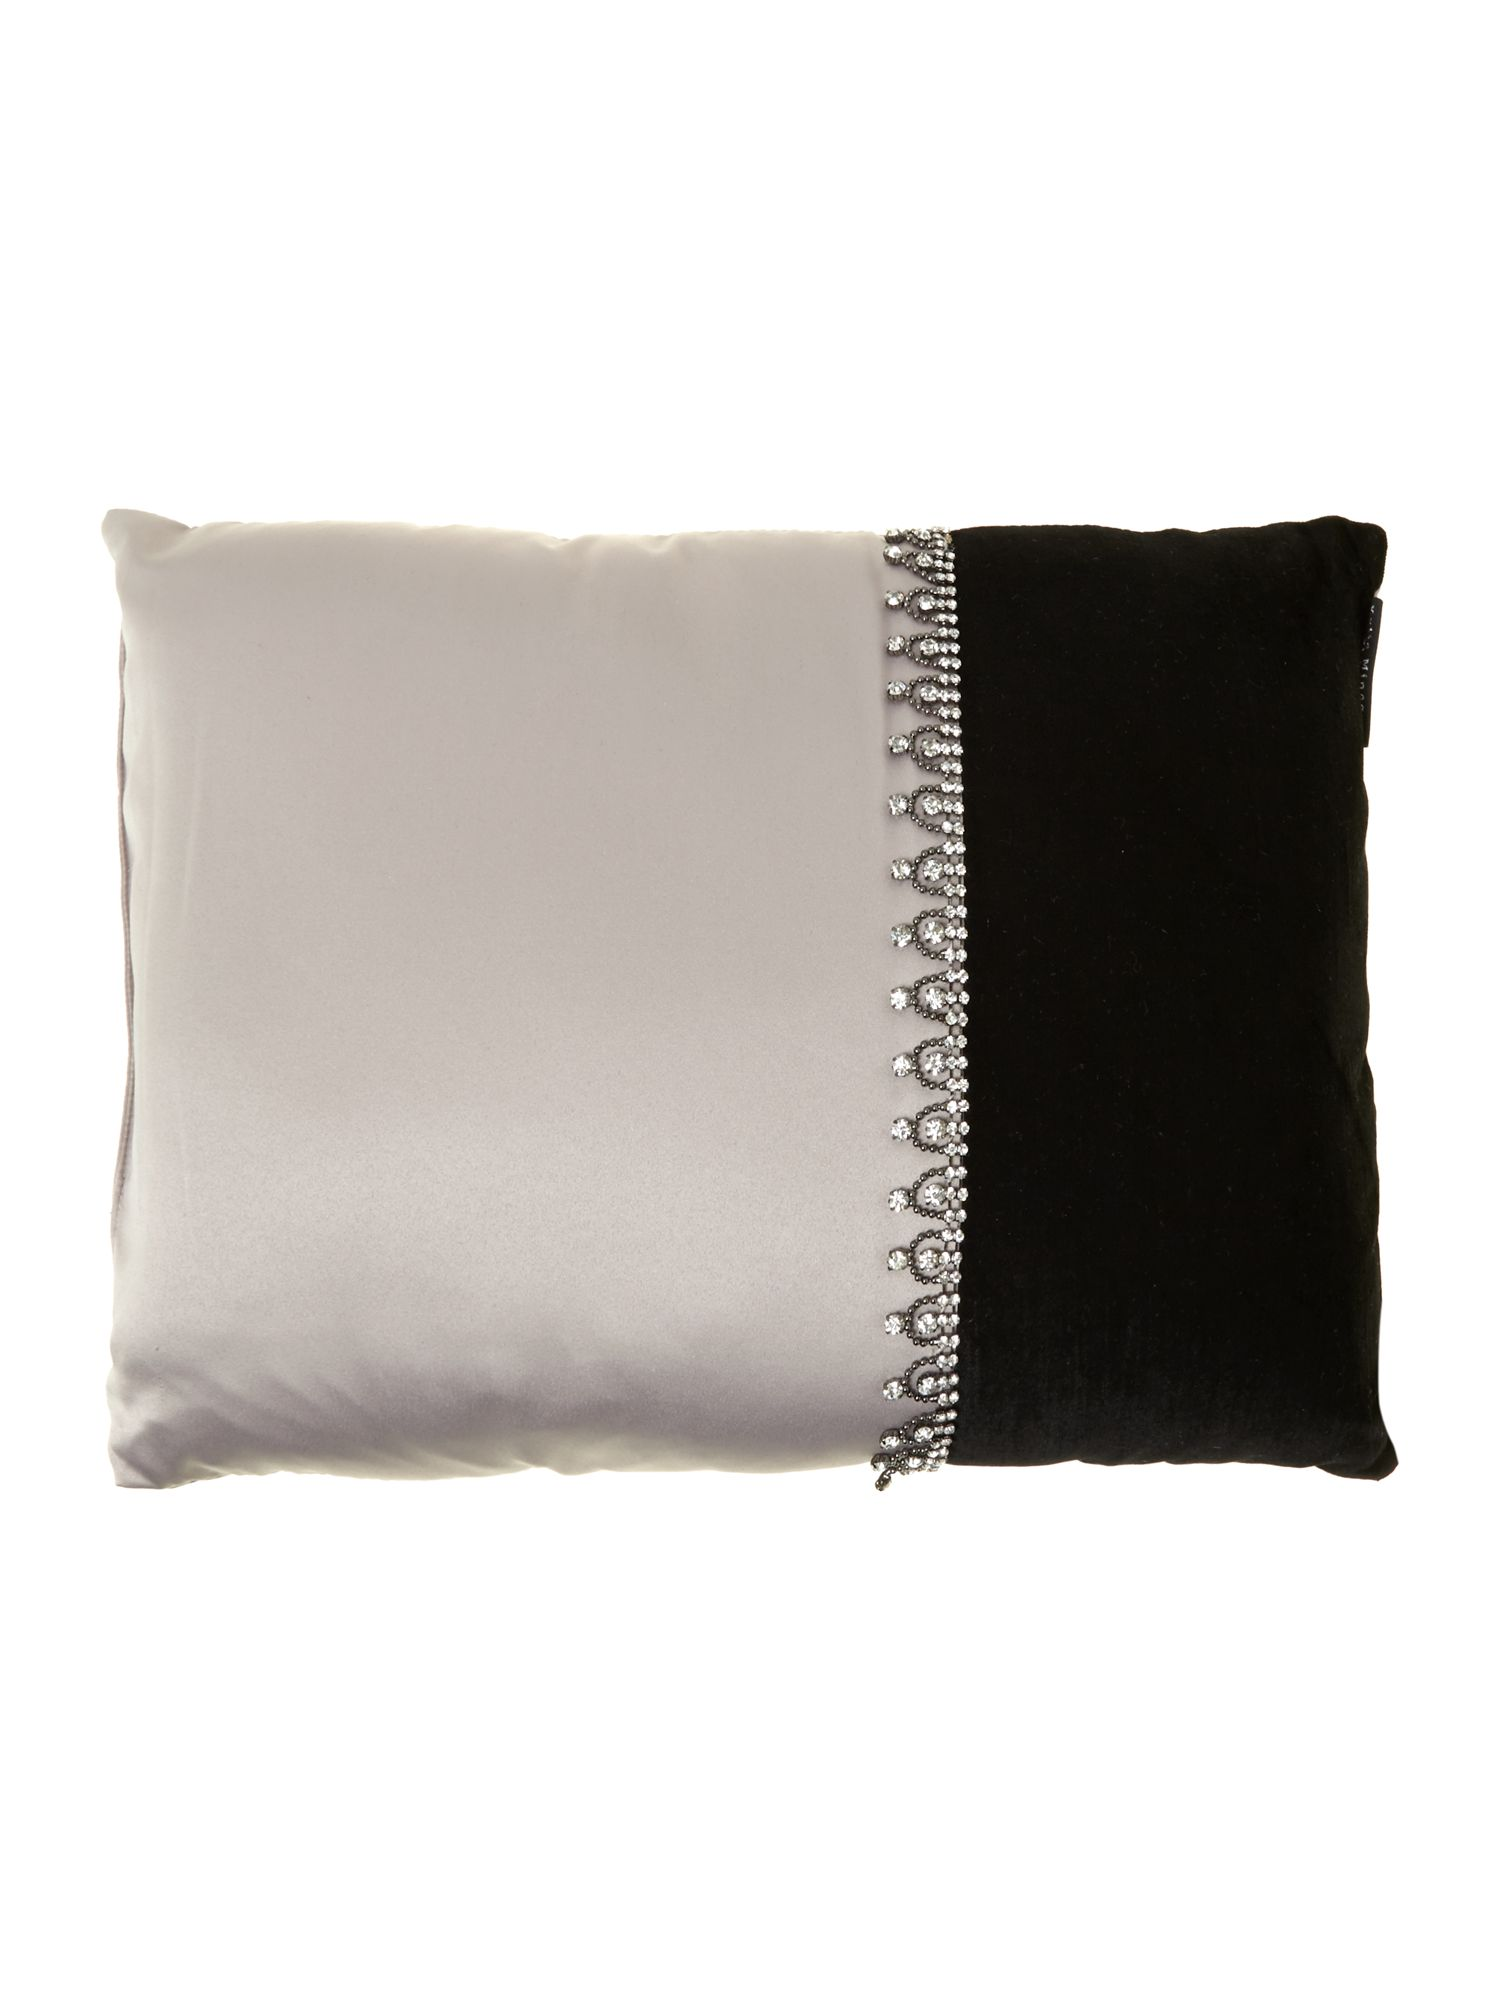 Gina smoke cushion 30x40